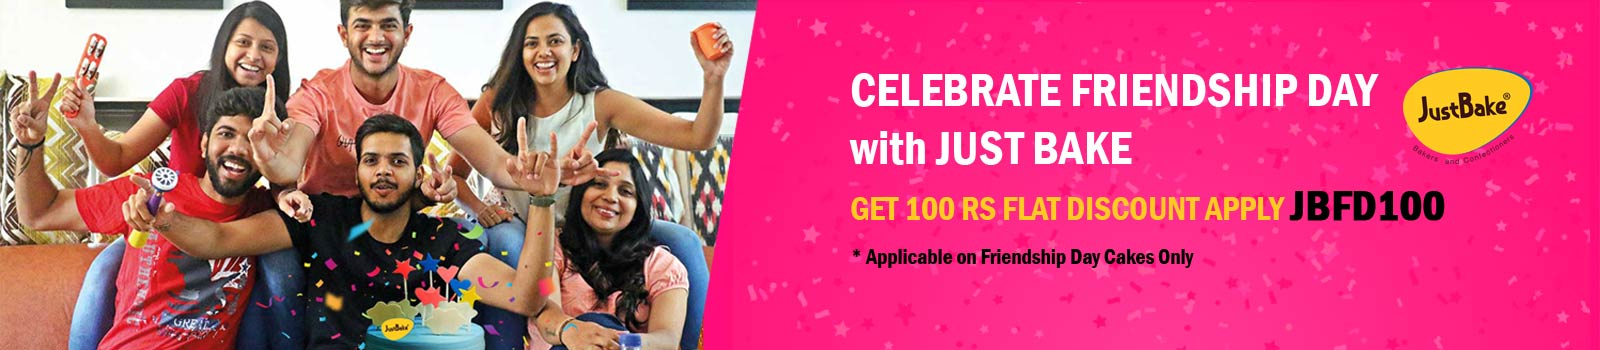 Get 100 Rs Flat Discount On Bangalore Friendship Day Cakes